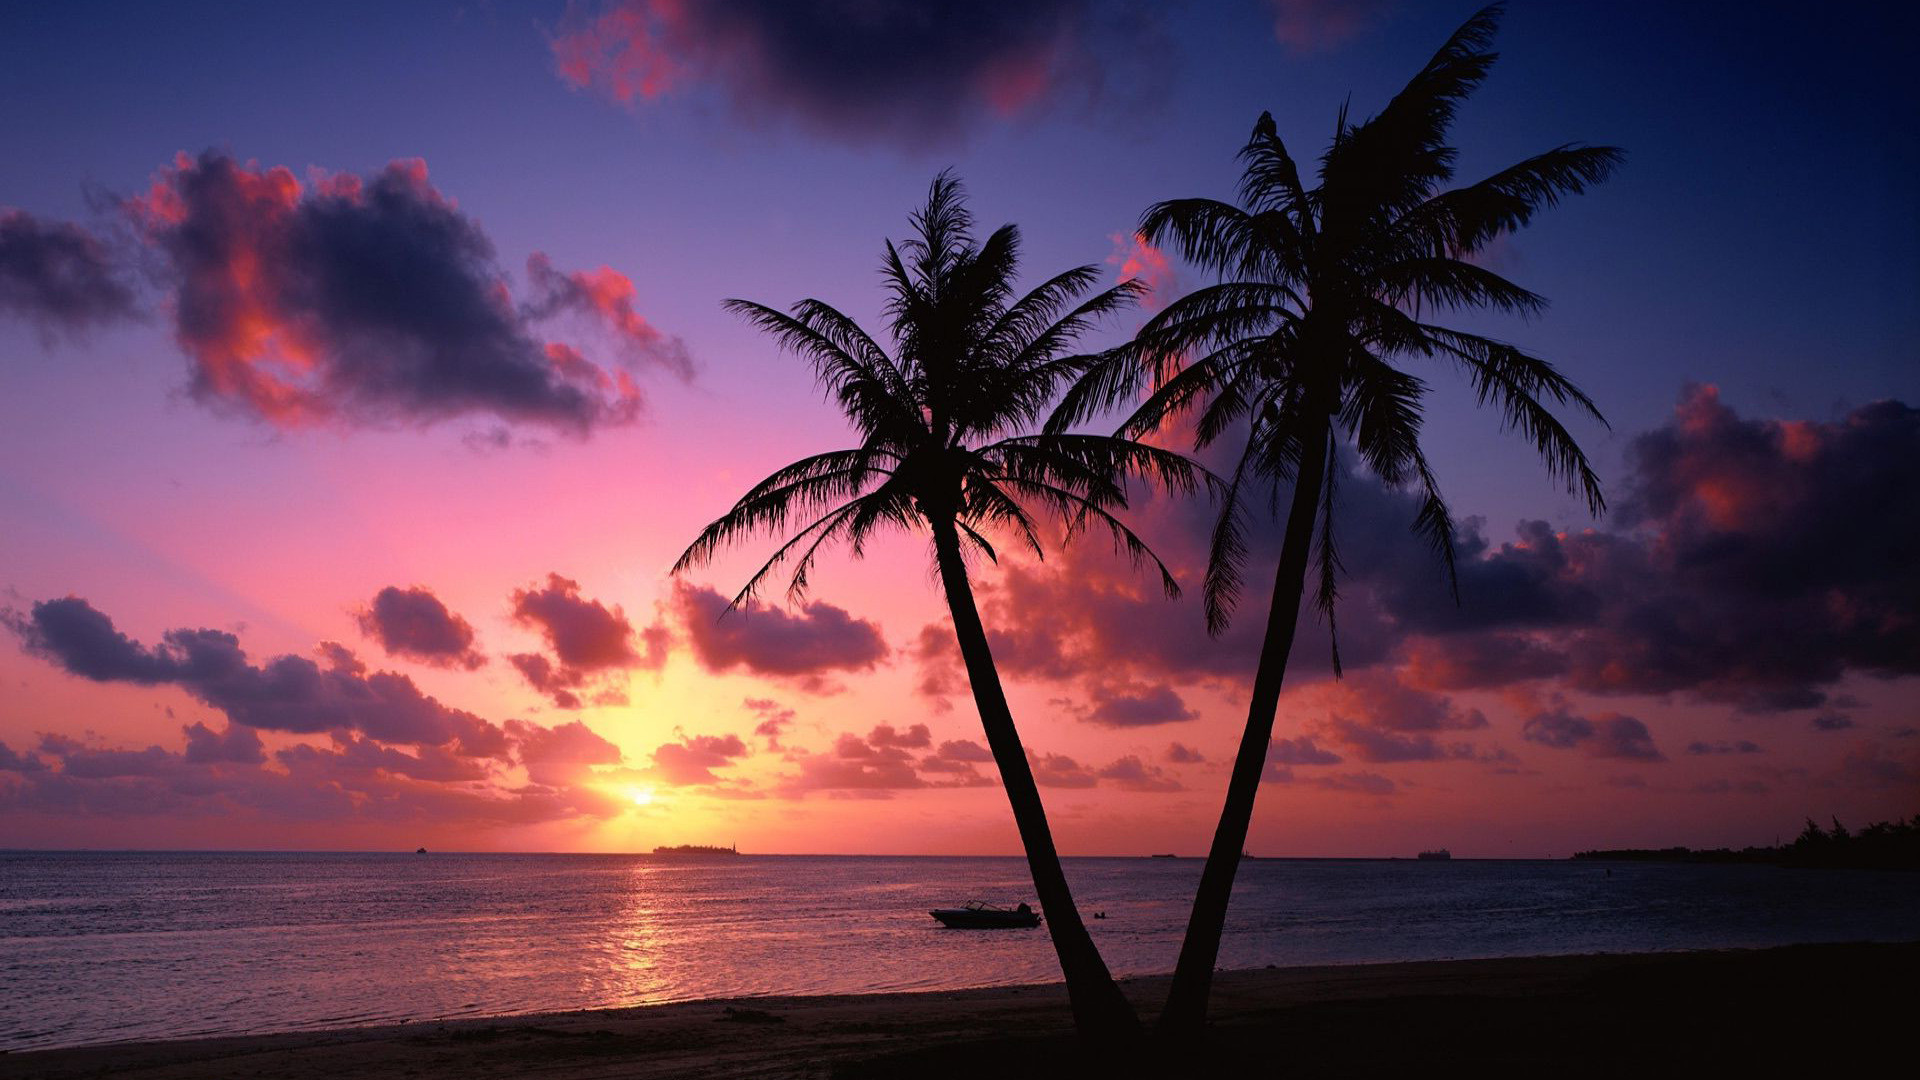 10 New Hawaii Beach Pictures Wallpapers Full Hd 1920 1080: Sunset Wallpaper For Desktop (51+ Images